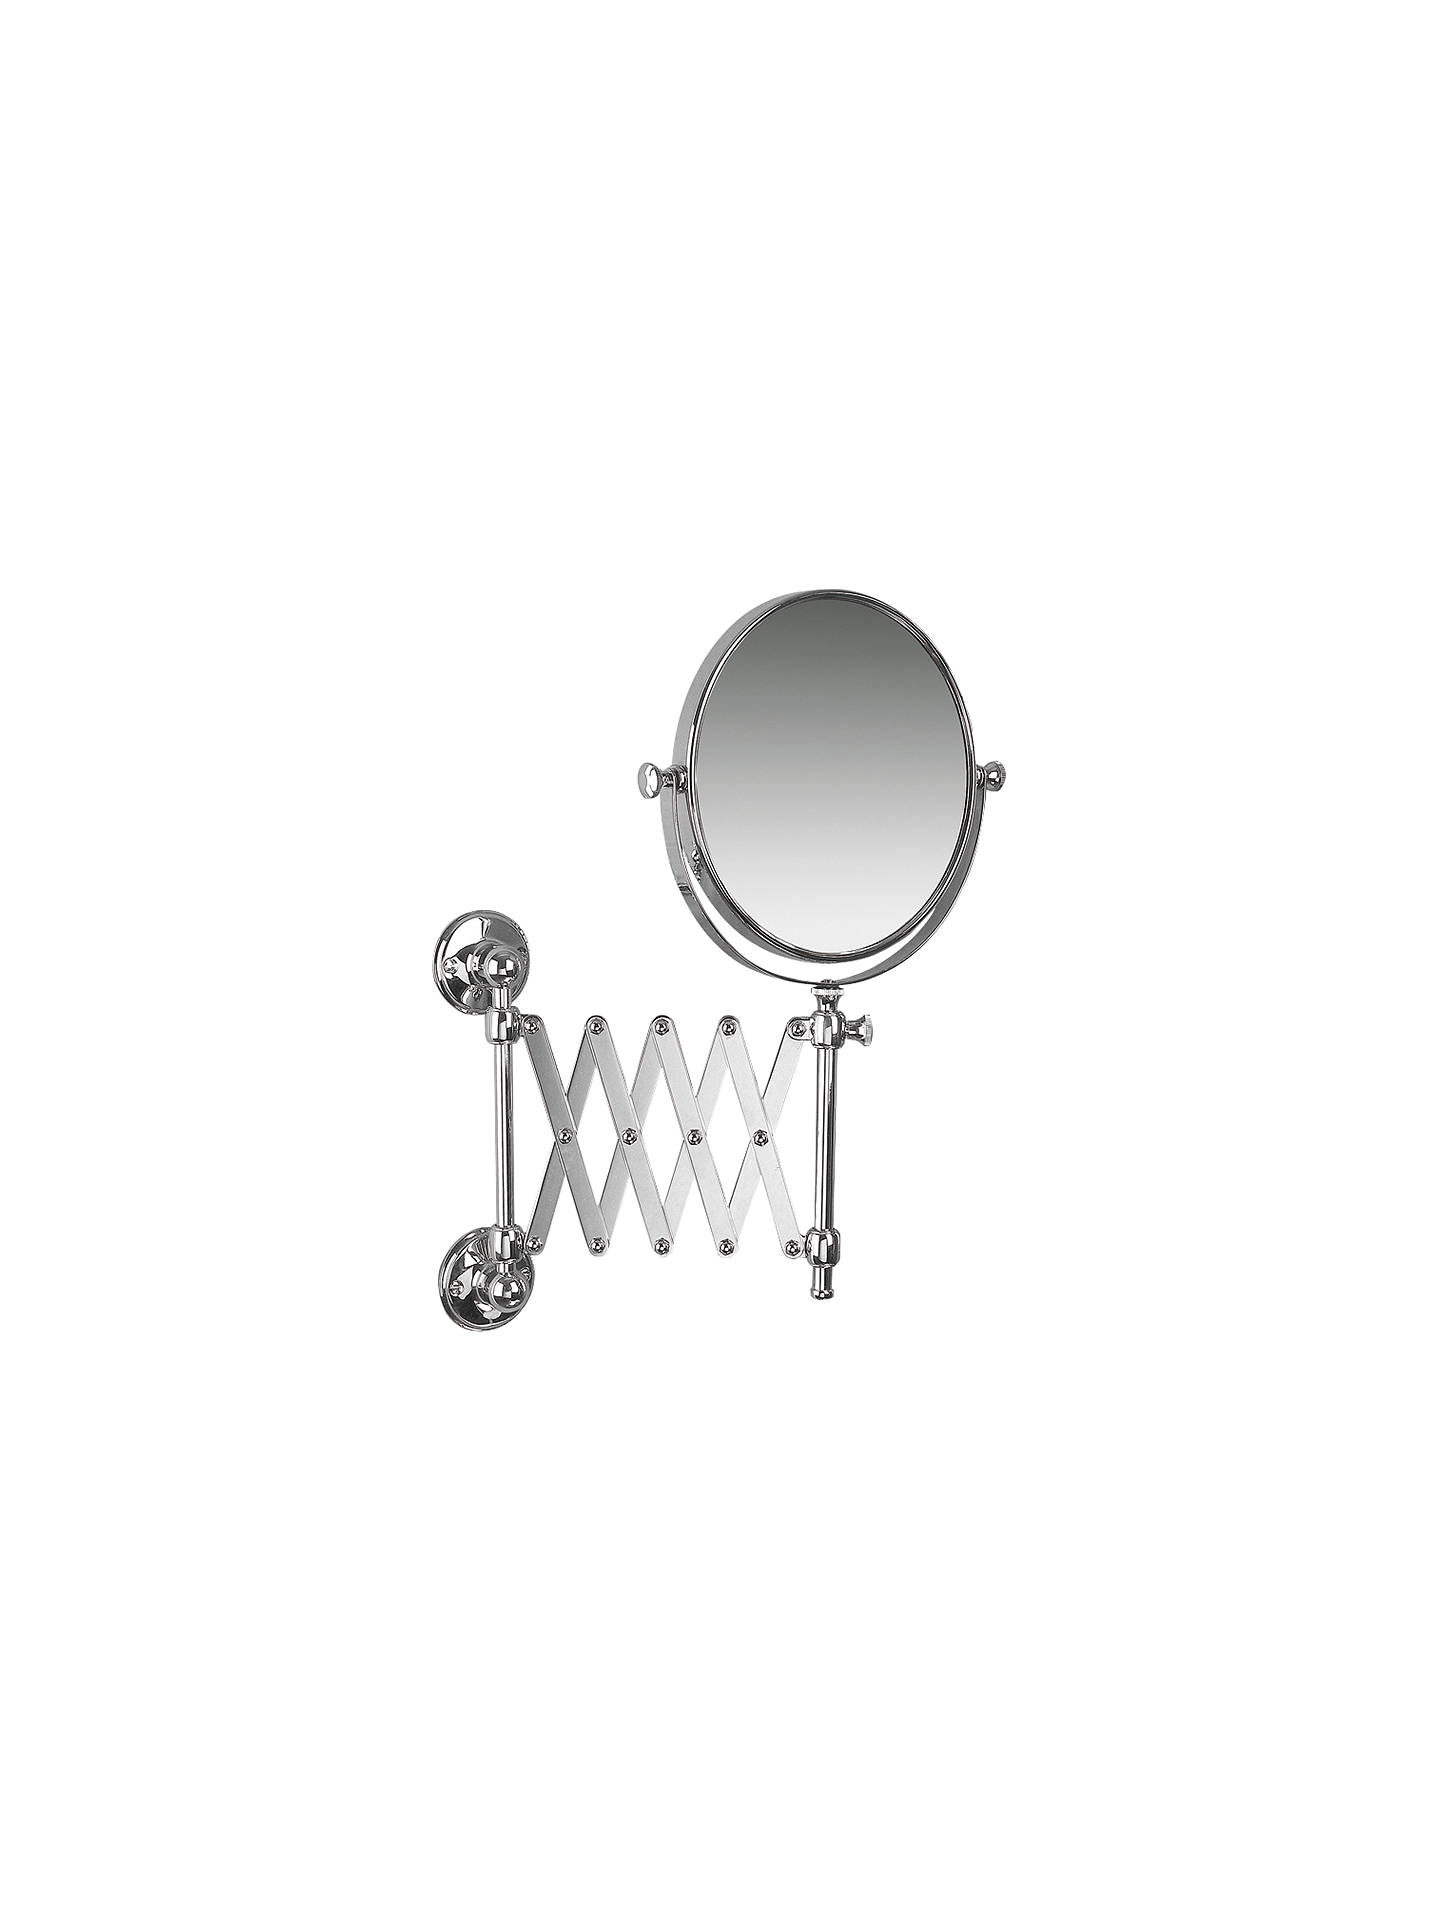 Buy Miller Stockholm Extending Magnifying Shaving Mirror Online at johnlewis.com